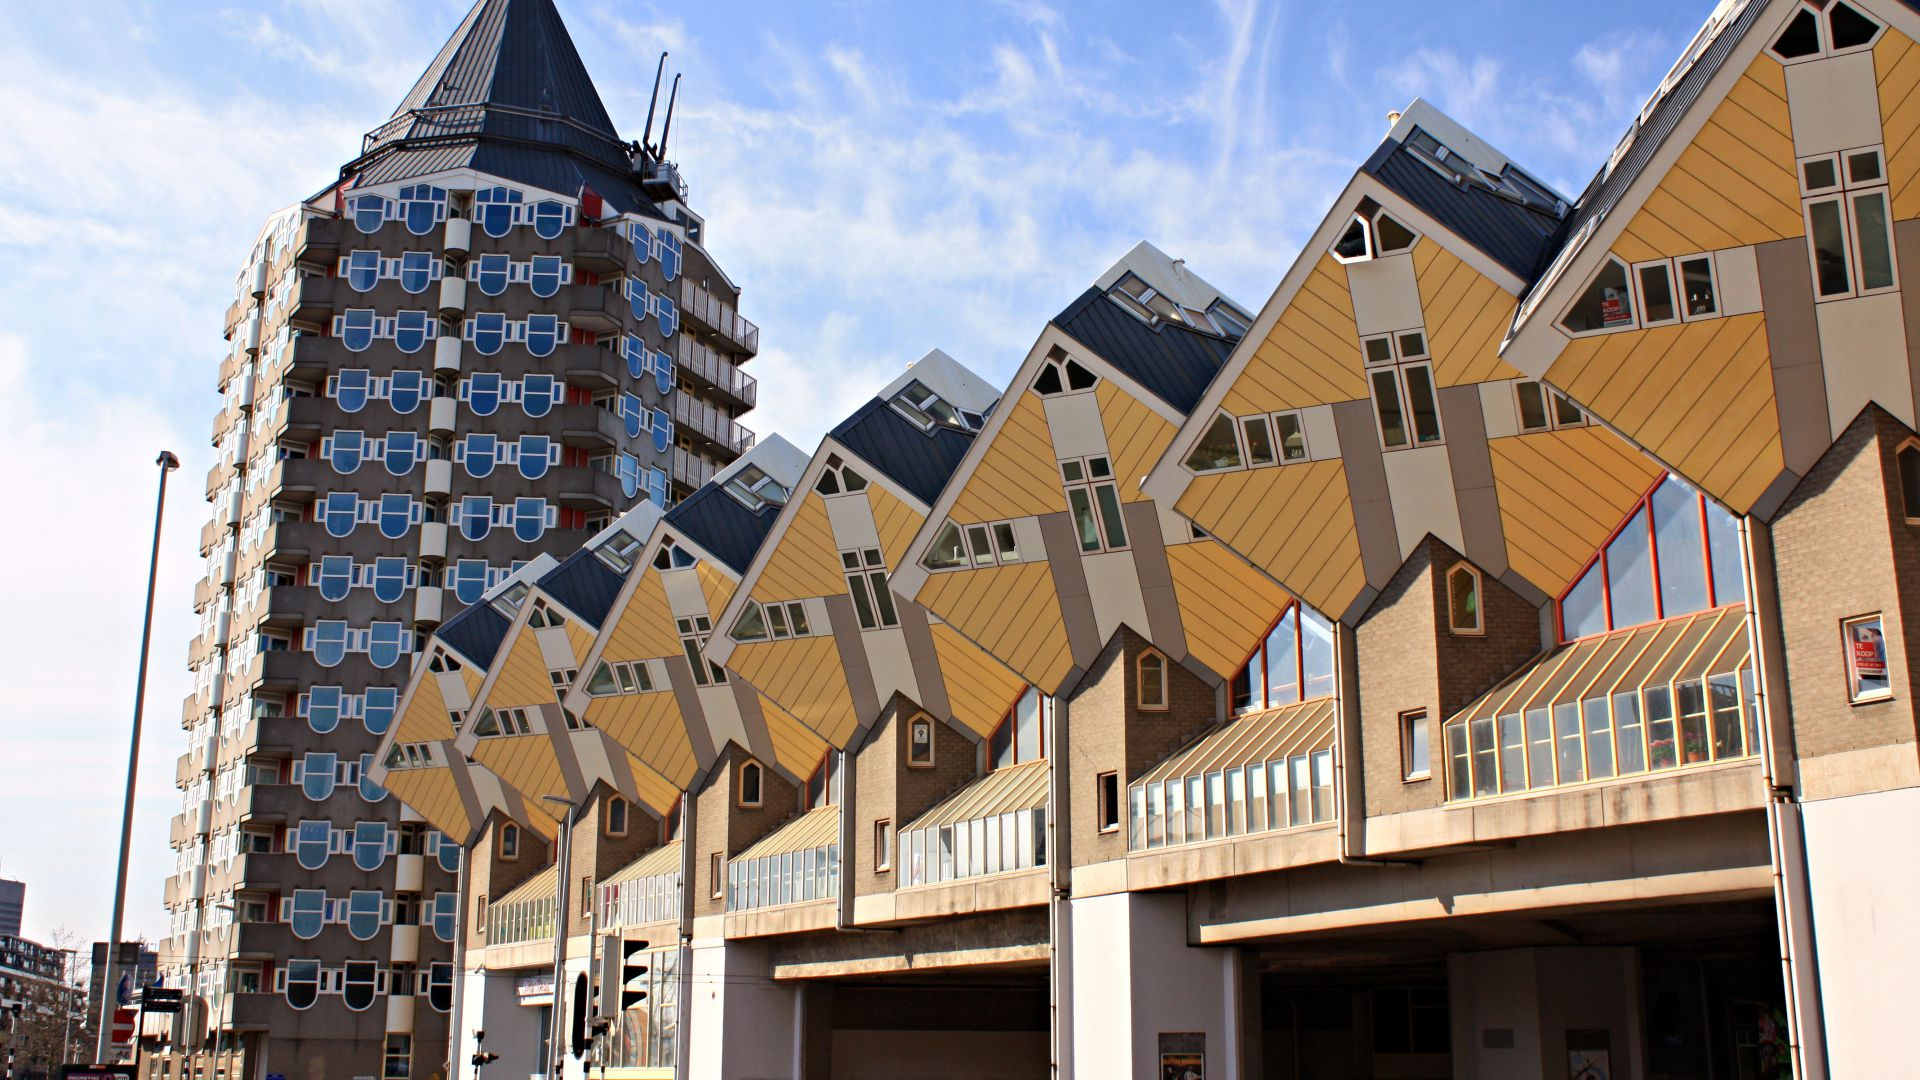 Wallpaper rotterdam cube houses travel architecture 5052 for Architecture rotterdam